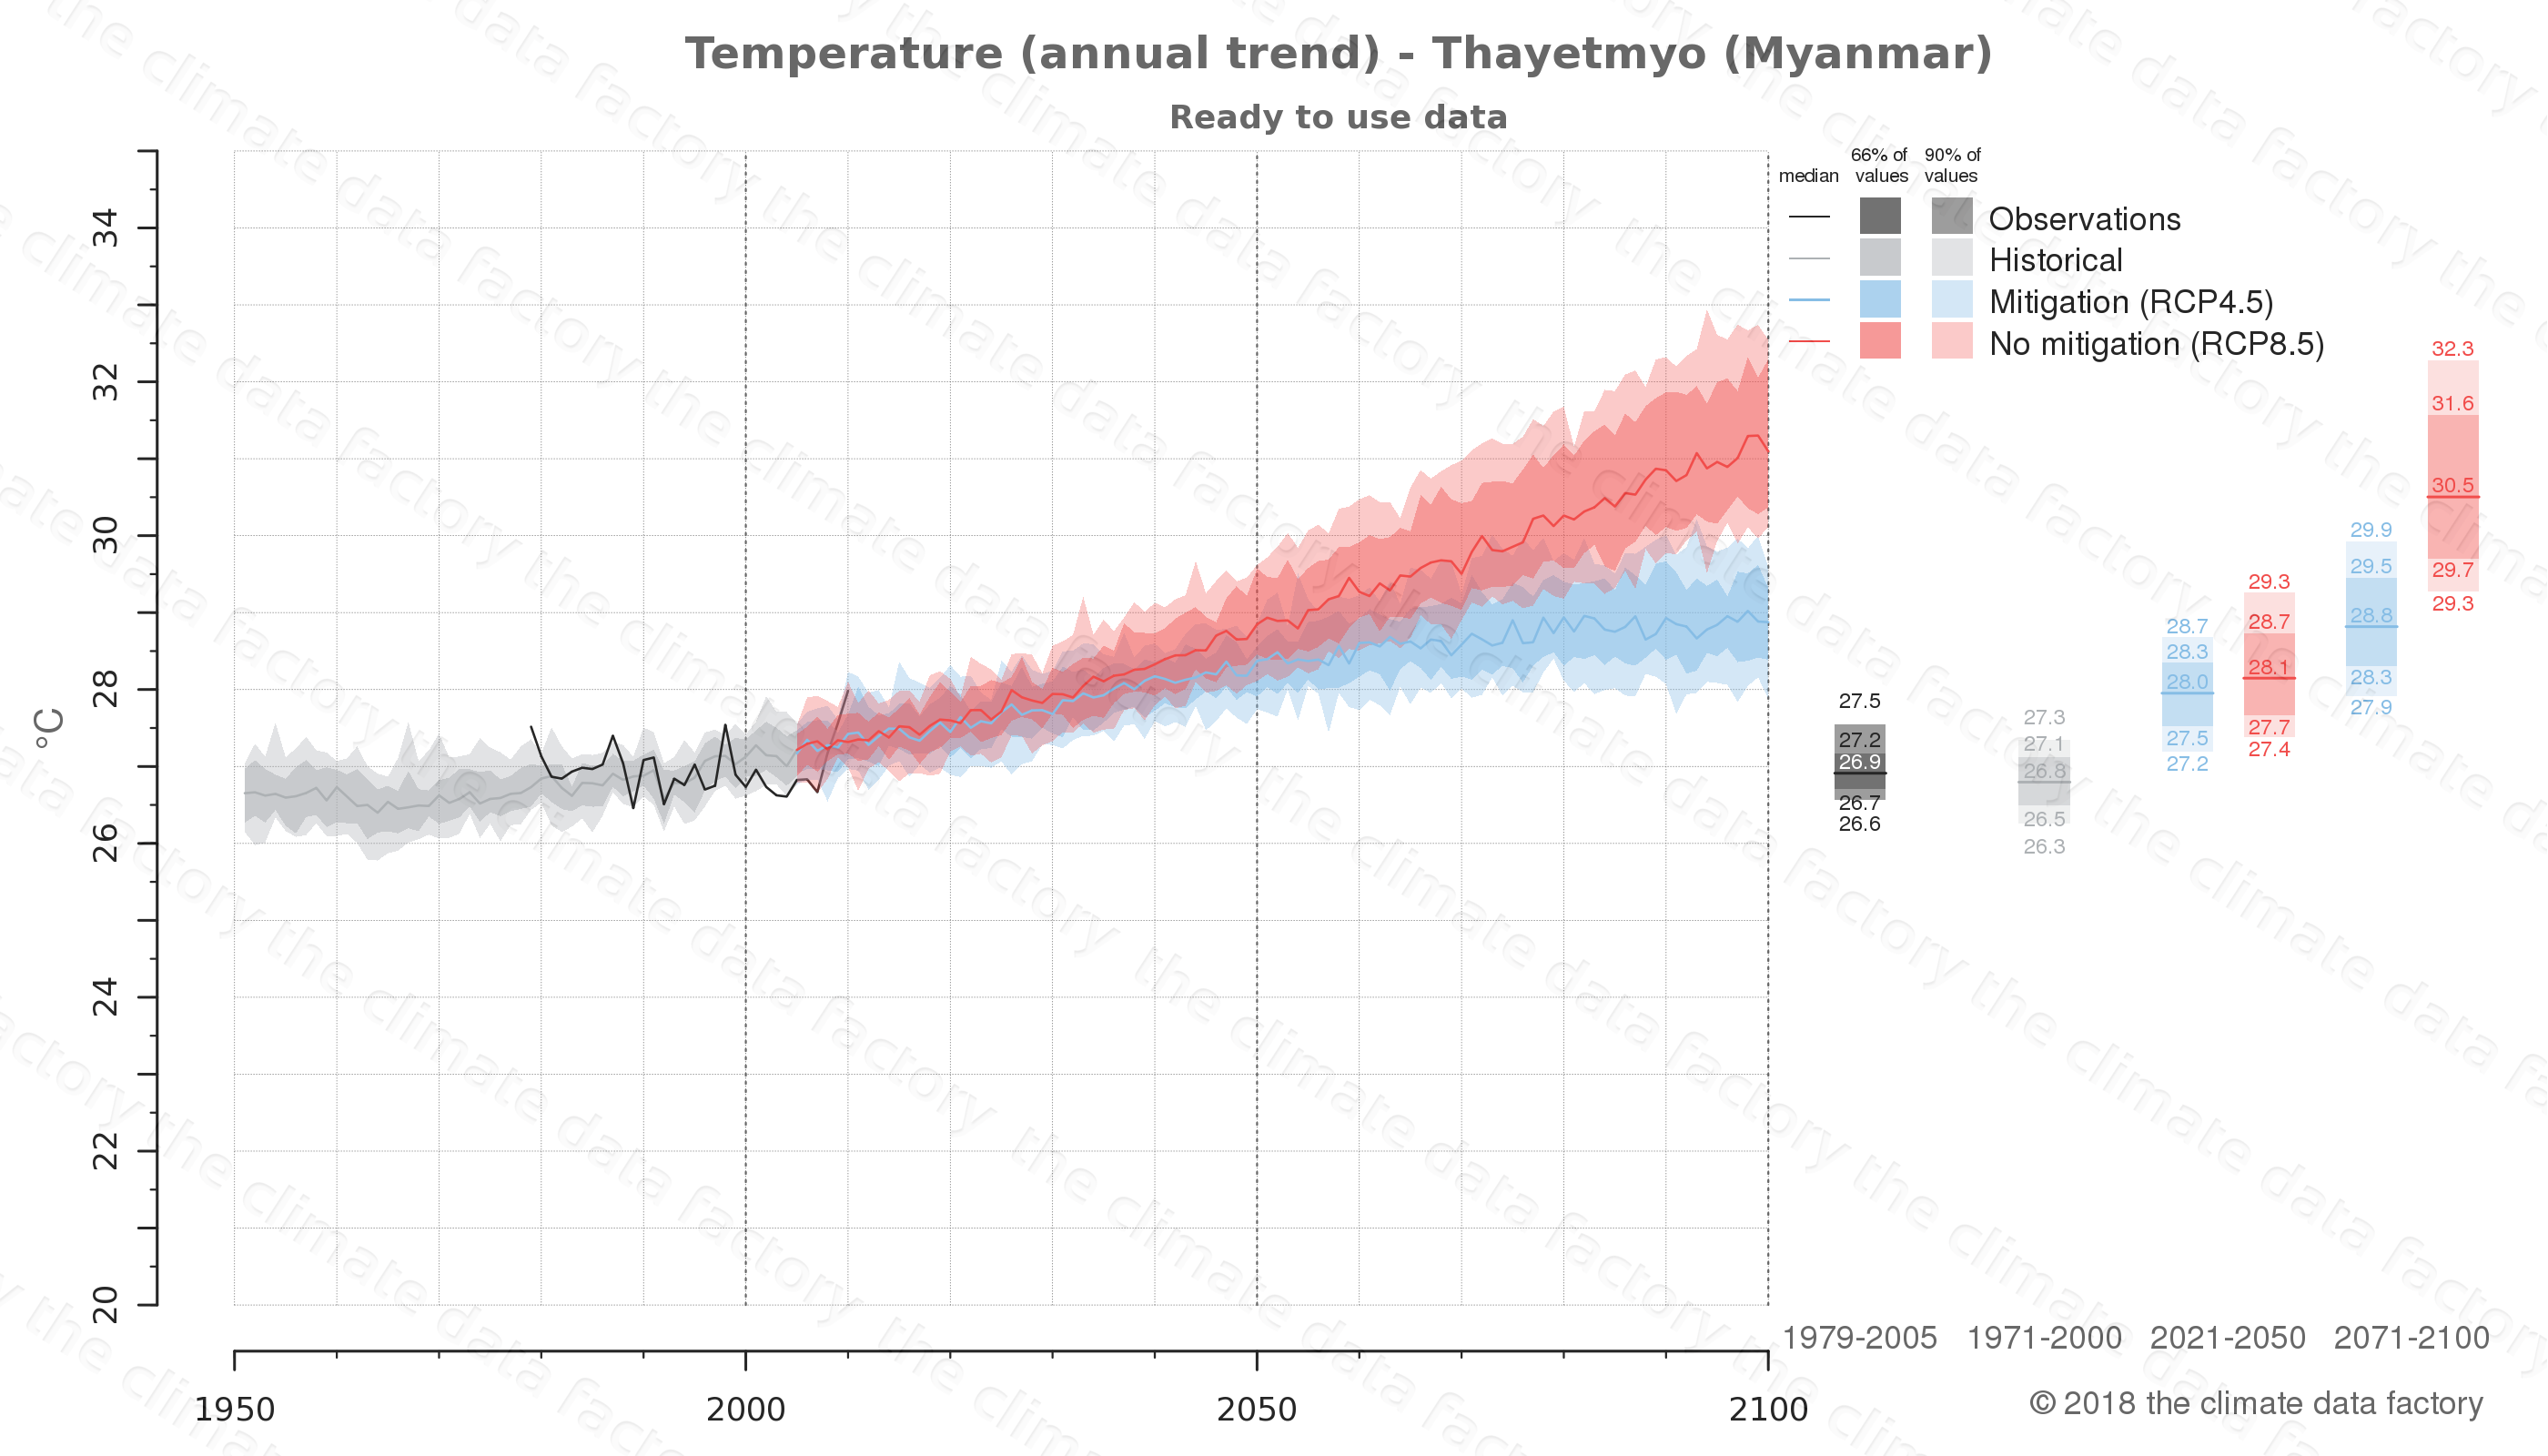 climate change data policy adaptation climate graph city data temperature thayetmyo myanmar